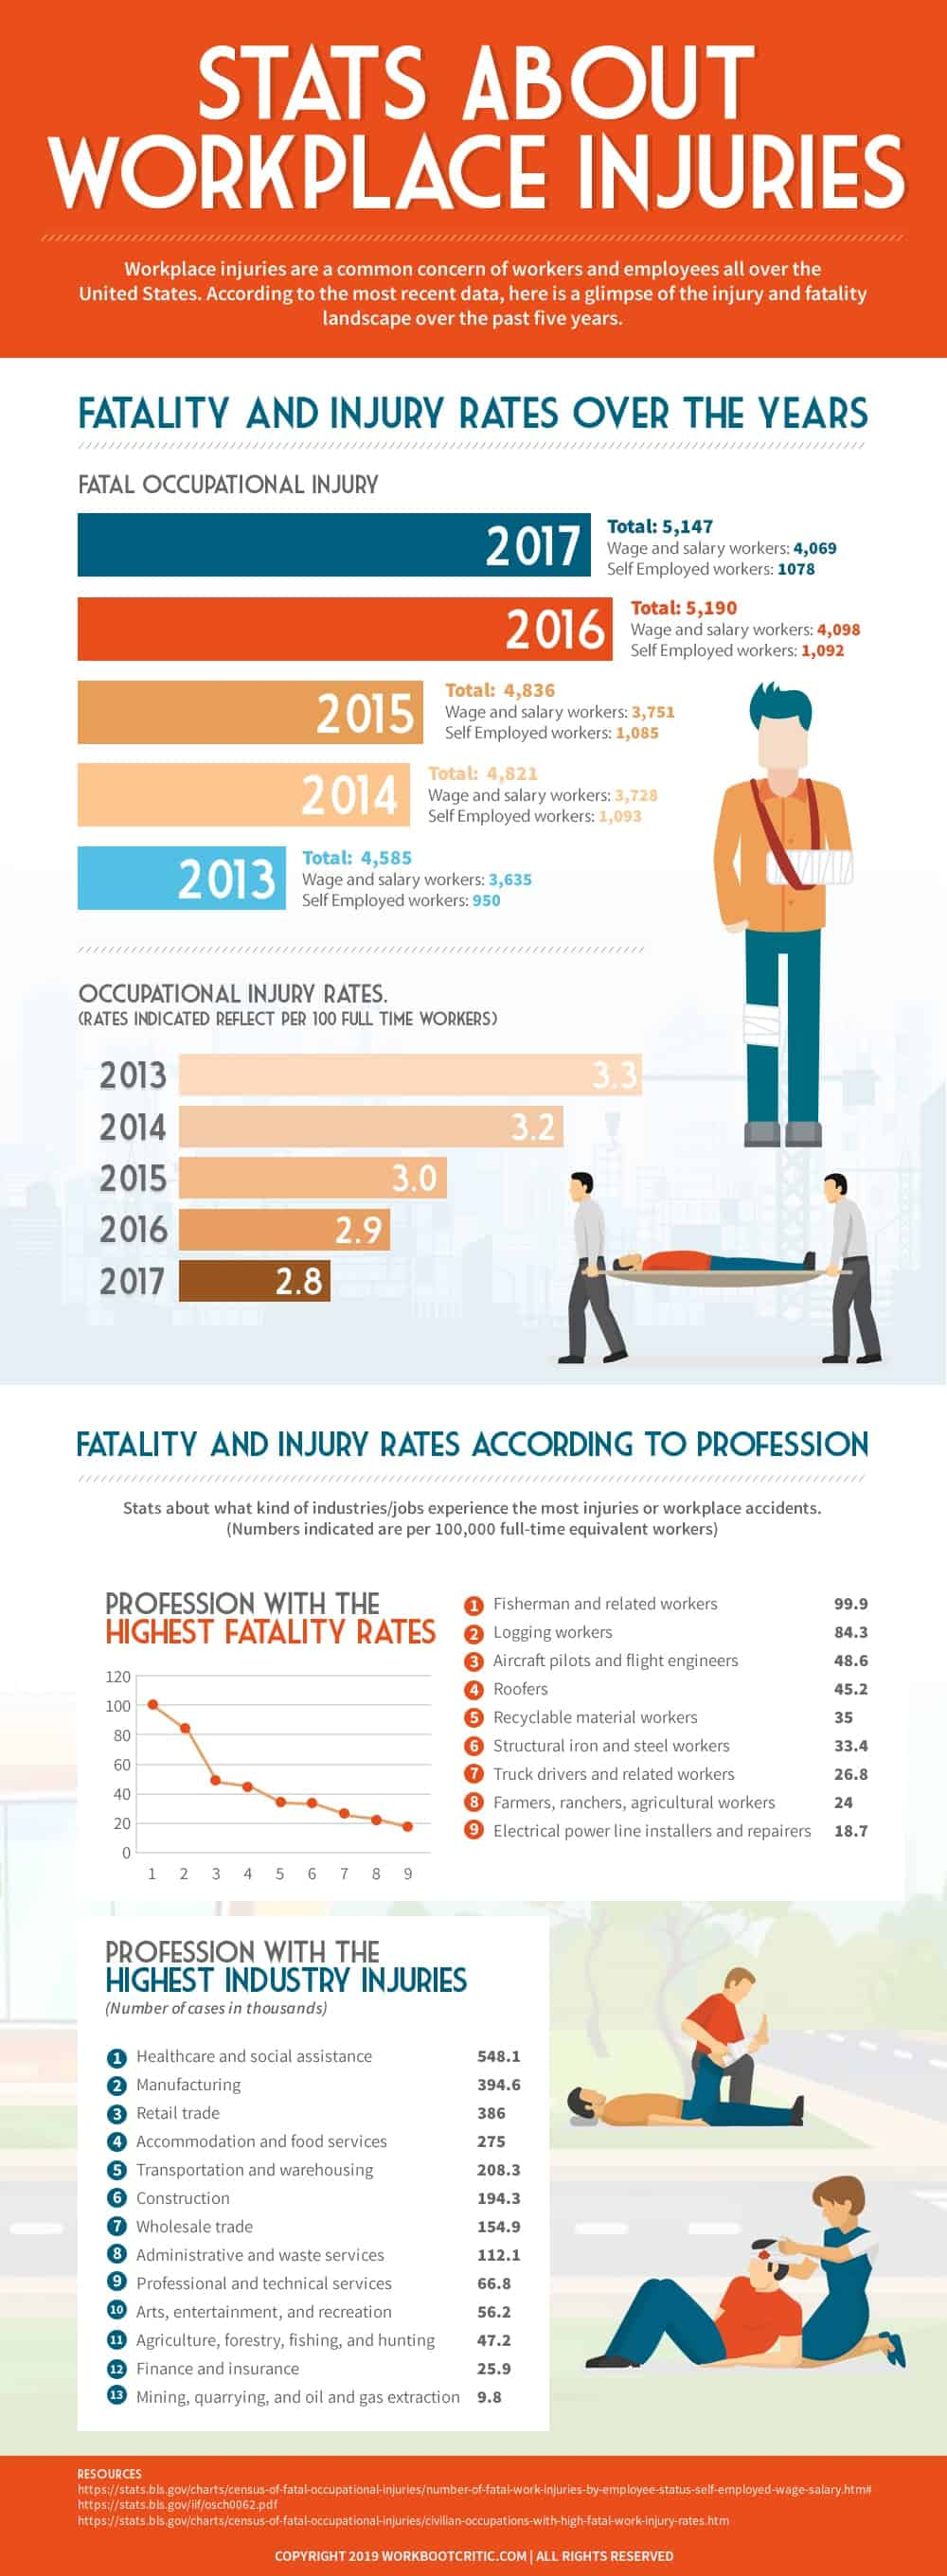 Stats About Workplace Injuries